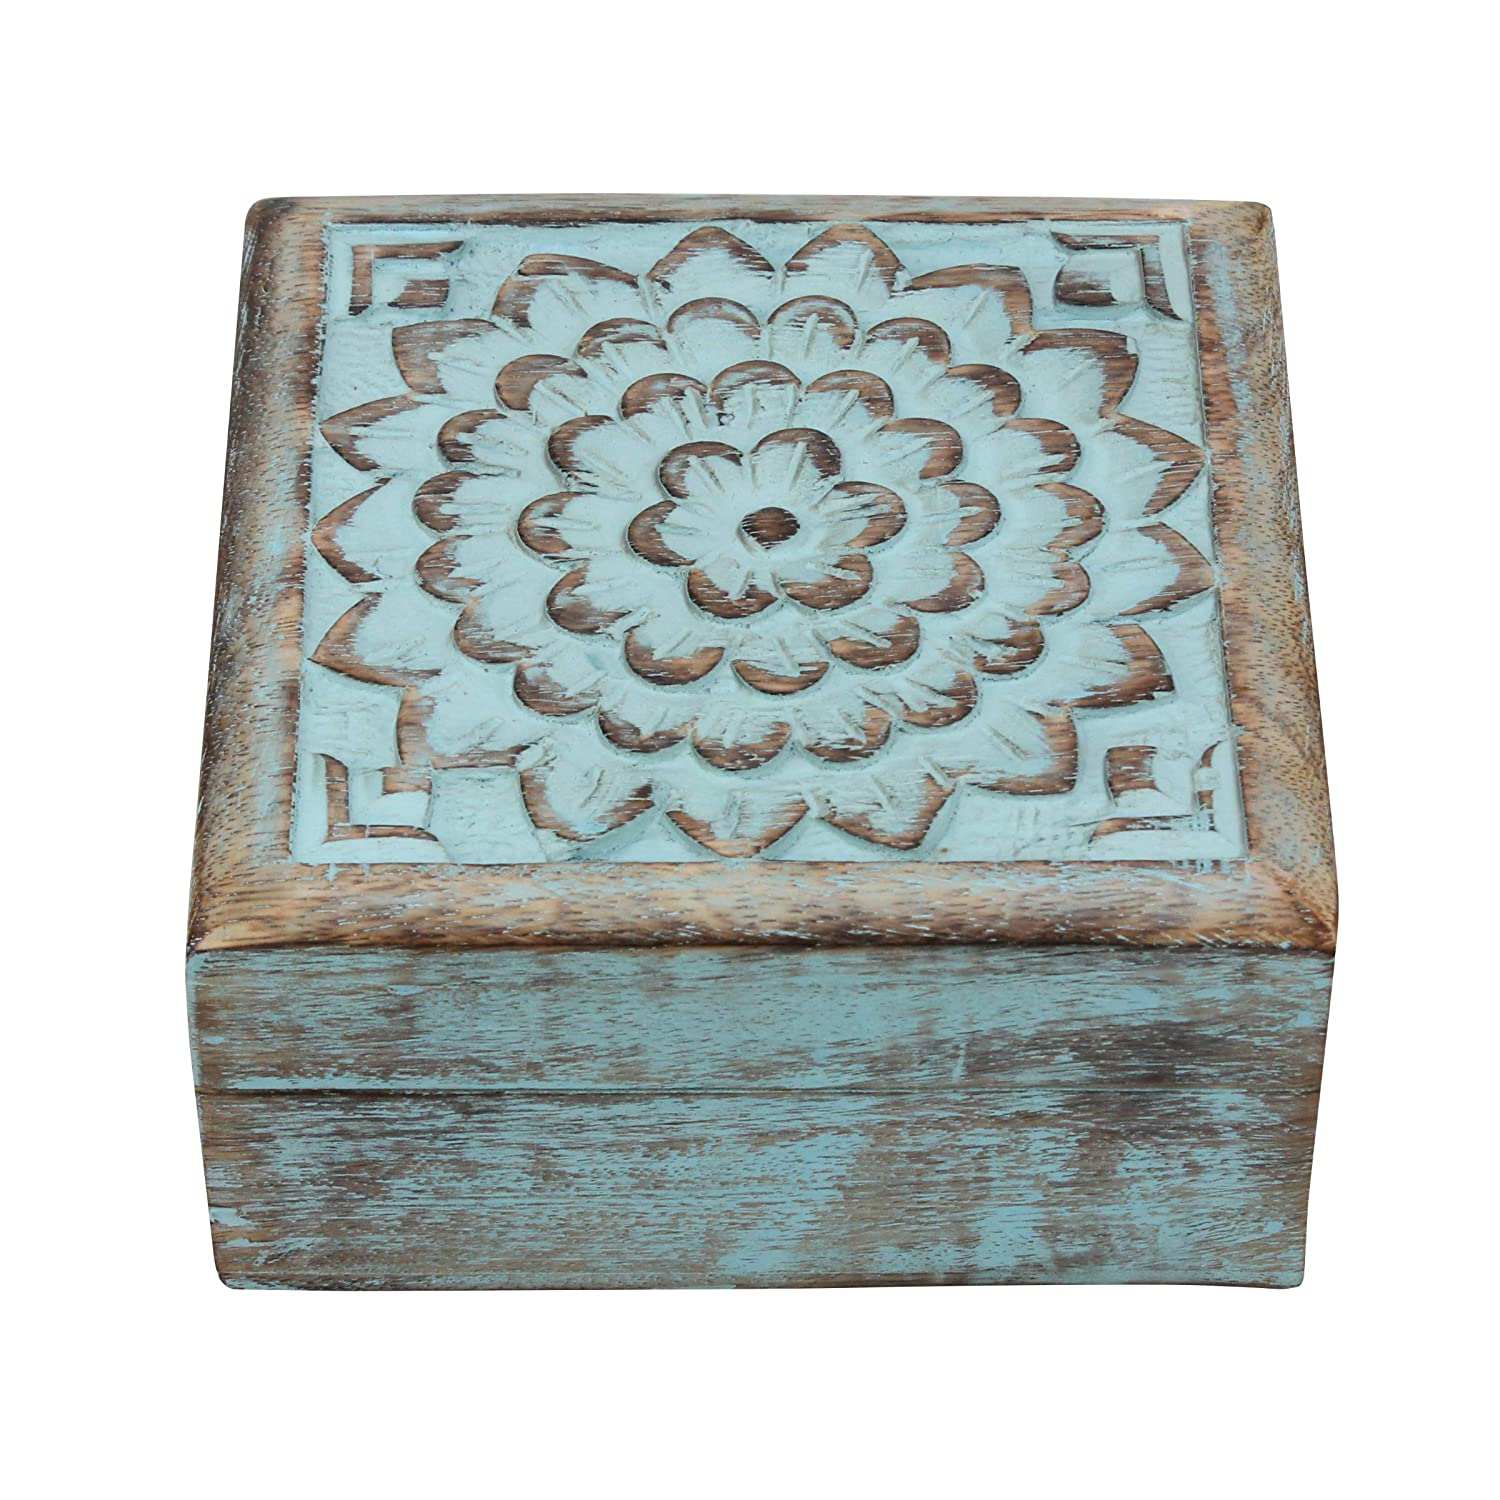 or Any Occasion Christmas Weddings Decorative Jewelry Holder Stonebriar Vintage Worn Blue Floral Wooden Keepsake Box with Hinged Lid Storage for Trinkets and Memorabilia Gift Idea for Birthdays